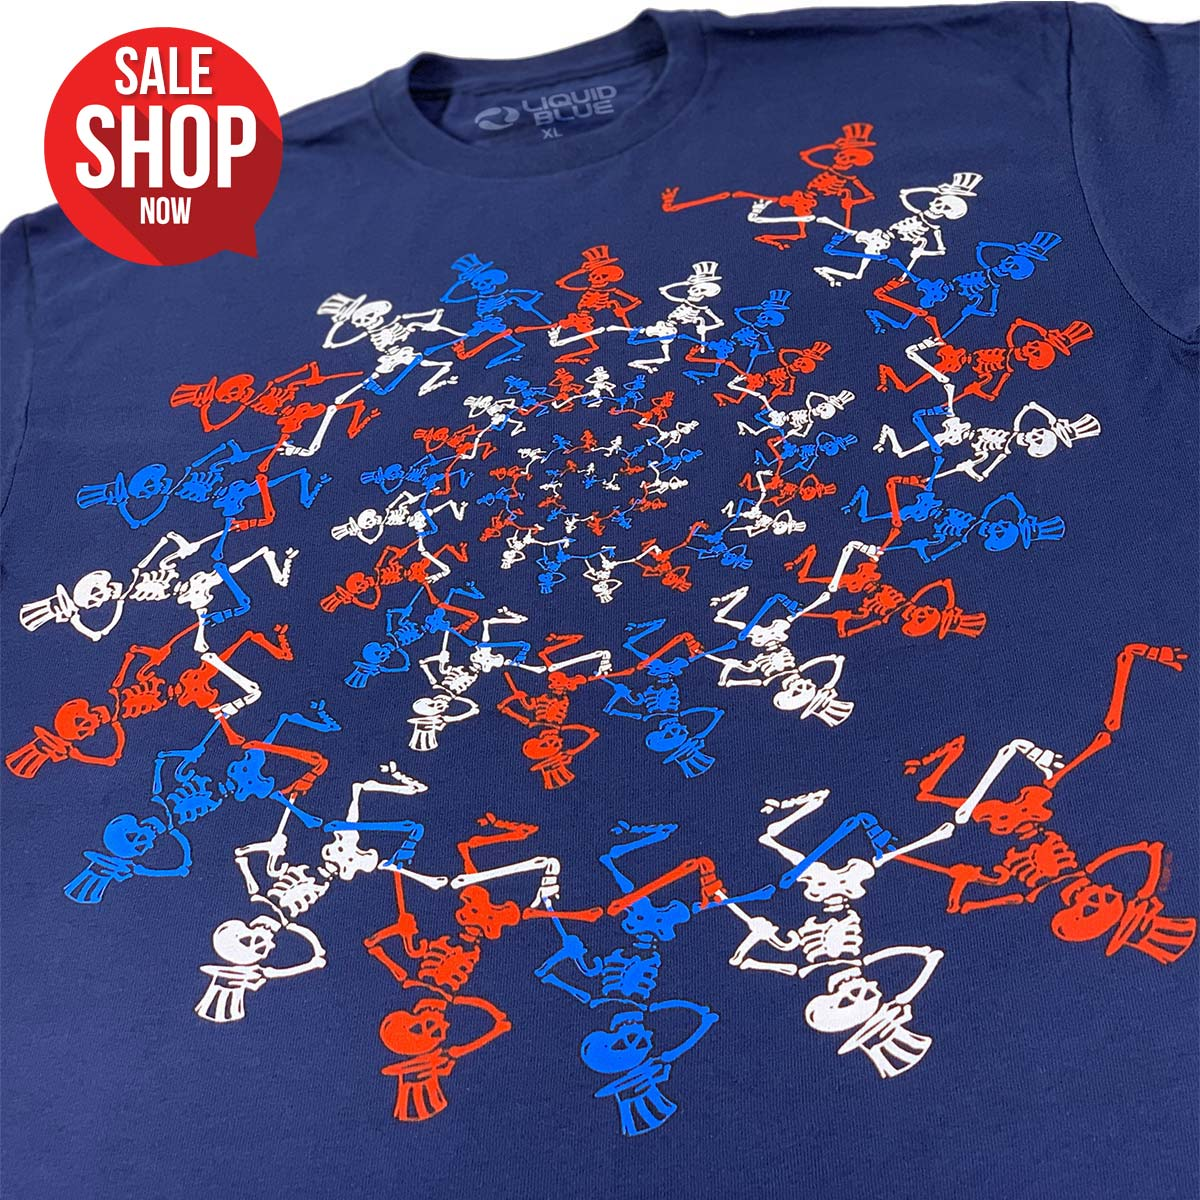 74acab6a1f55 $5.55 Shipping & FREE Shipping over $75** https://mailchi.mp/liquidblue/060319r  … #gratefuldead #deadandcompany #deadco #4thofjuly ...